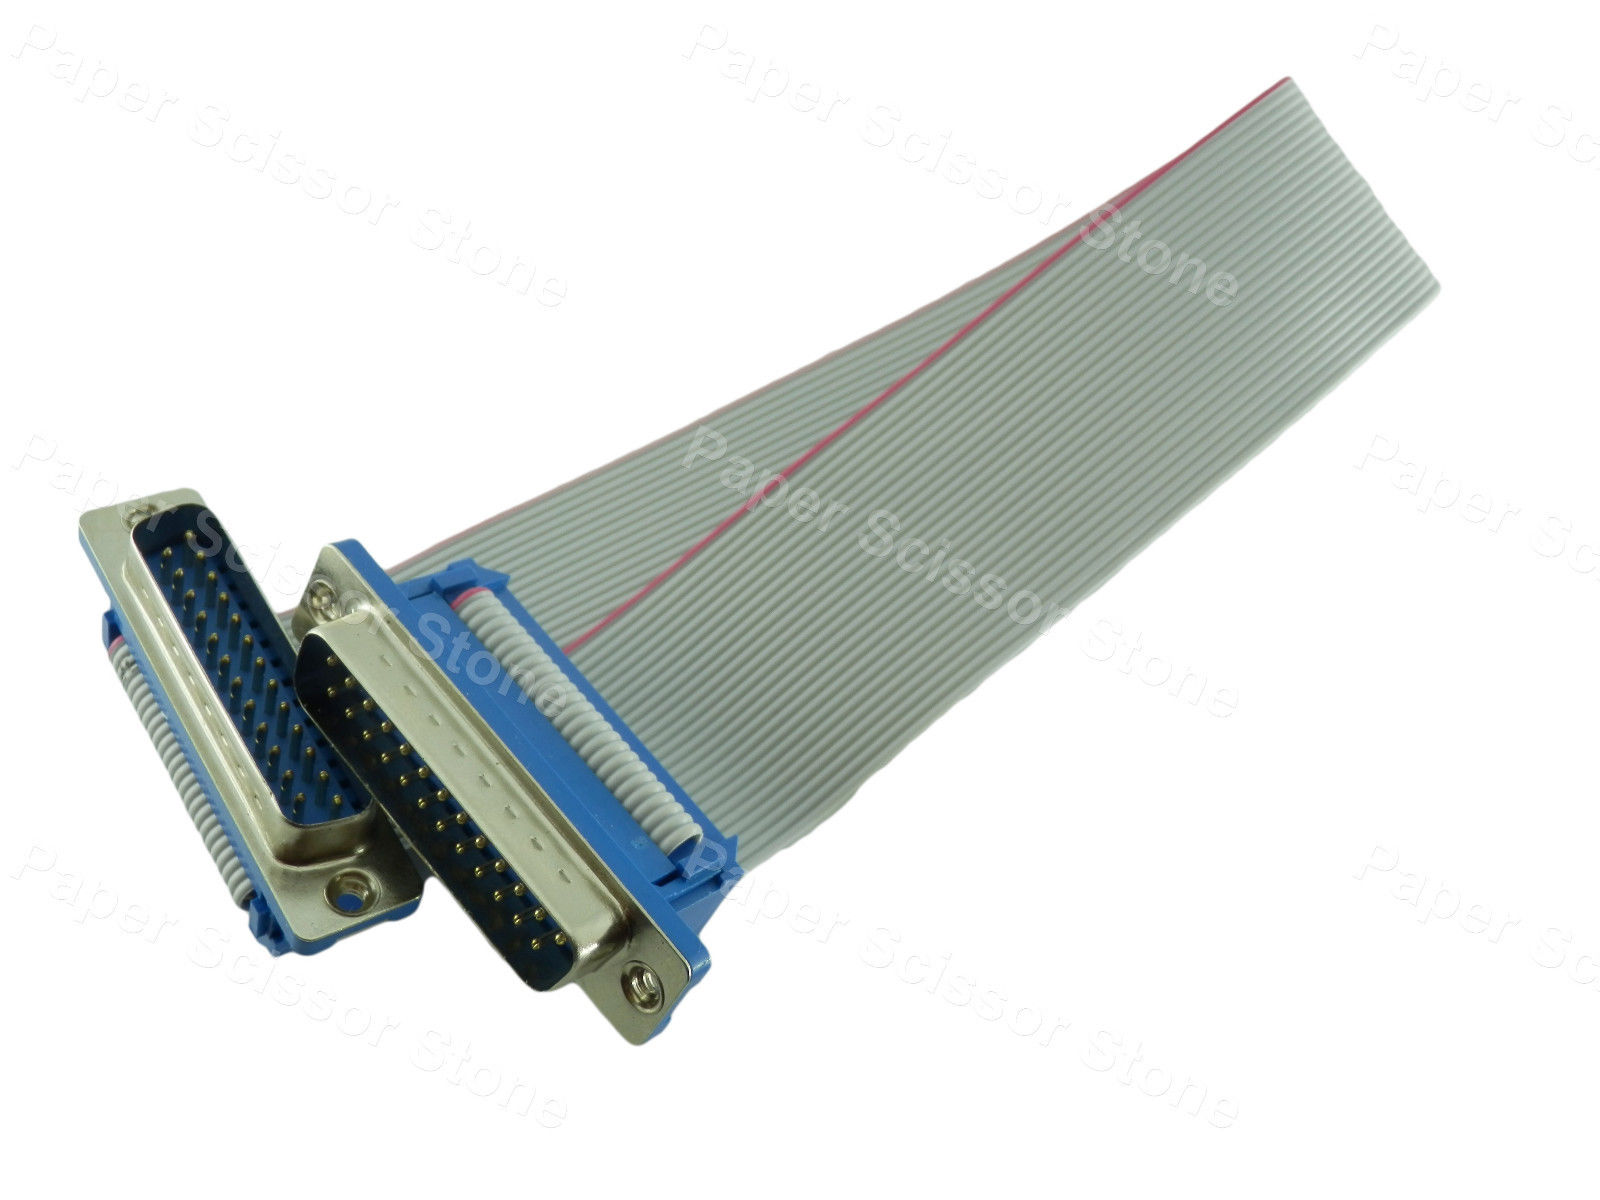 12 Inch DB25 Male to Male RS232 Serial / Parallel Port Ribbon Flat Cable 12x serial port connector rs232 dr9 9 pin adapter male